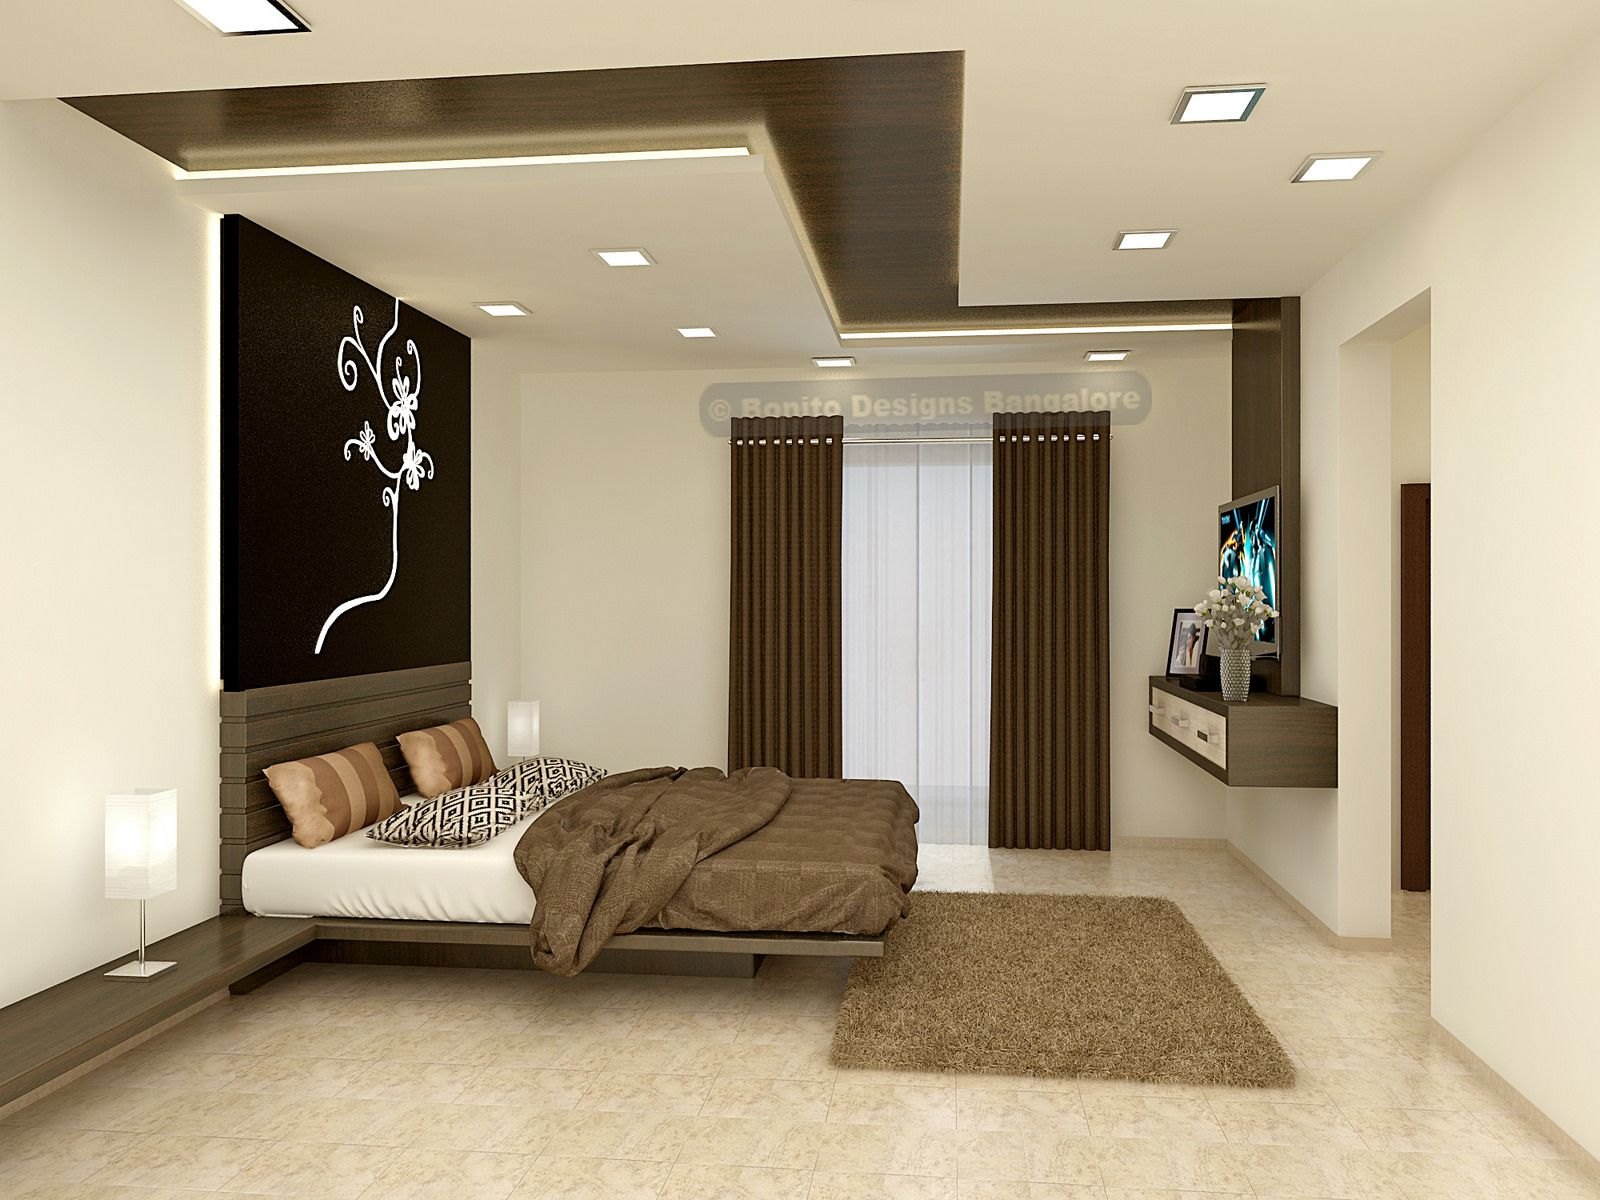 Sandepmbr 1 Ceilings Bedrooms And False Ceiling Ideas